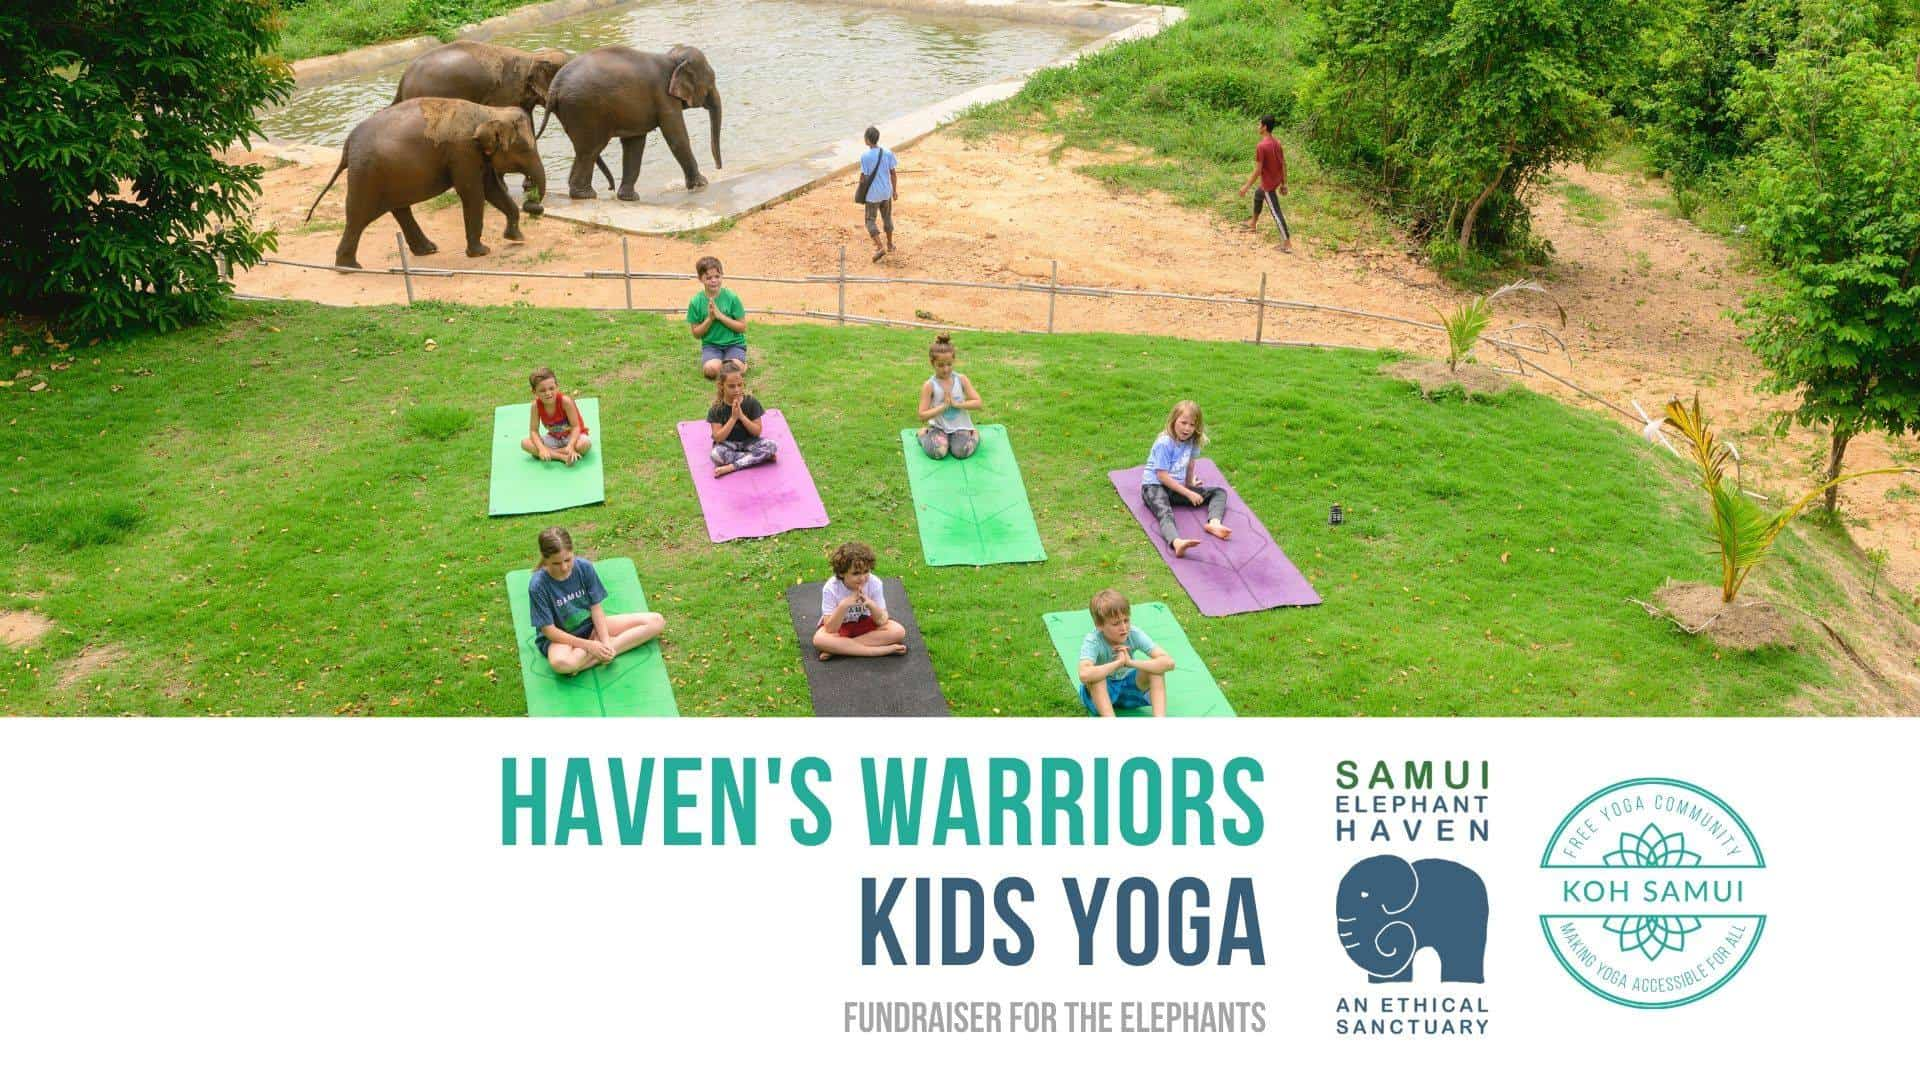 Haven's Warriors, Community Yoga for Kids at Samui Elephant Haven 2